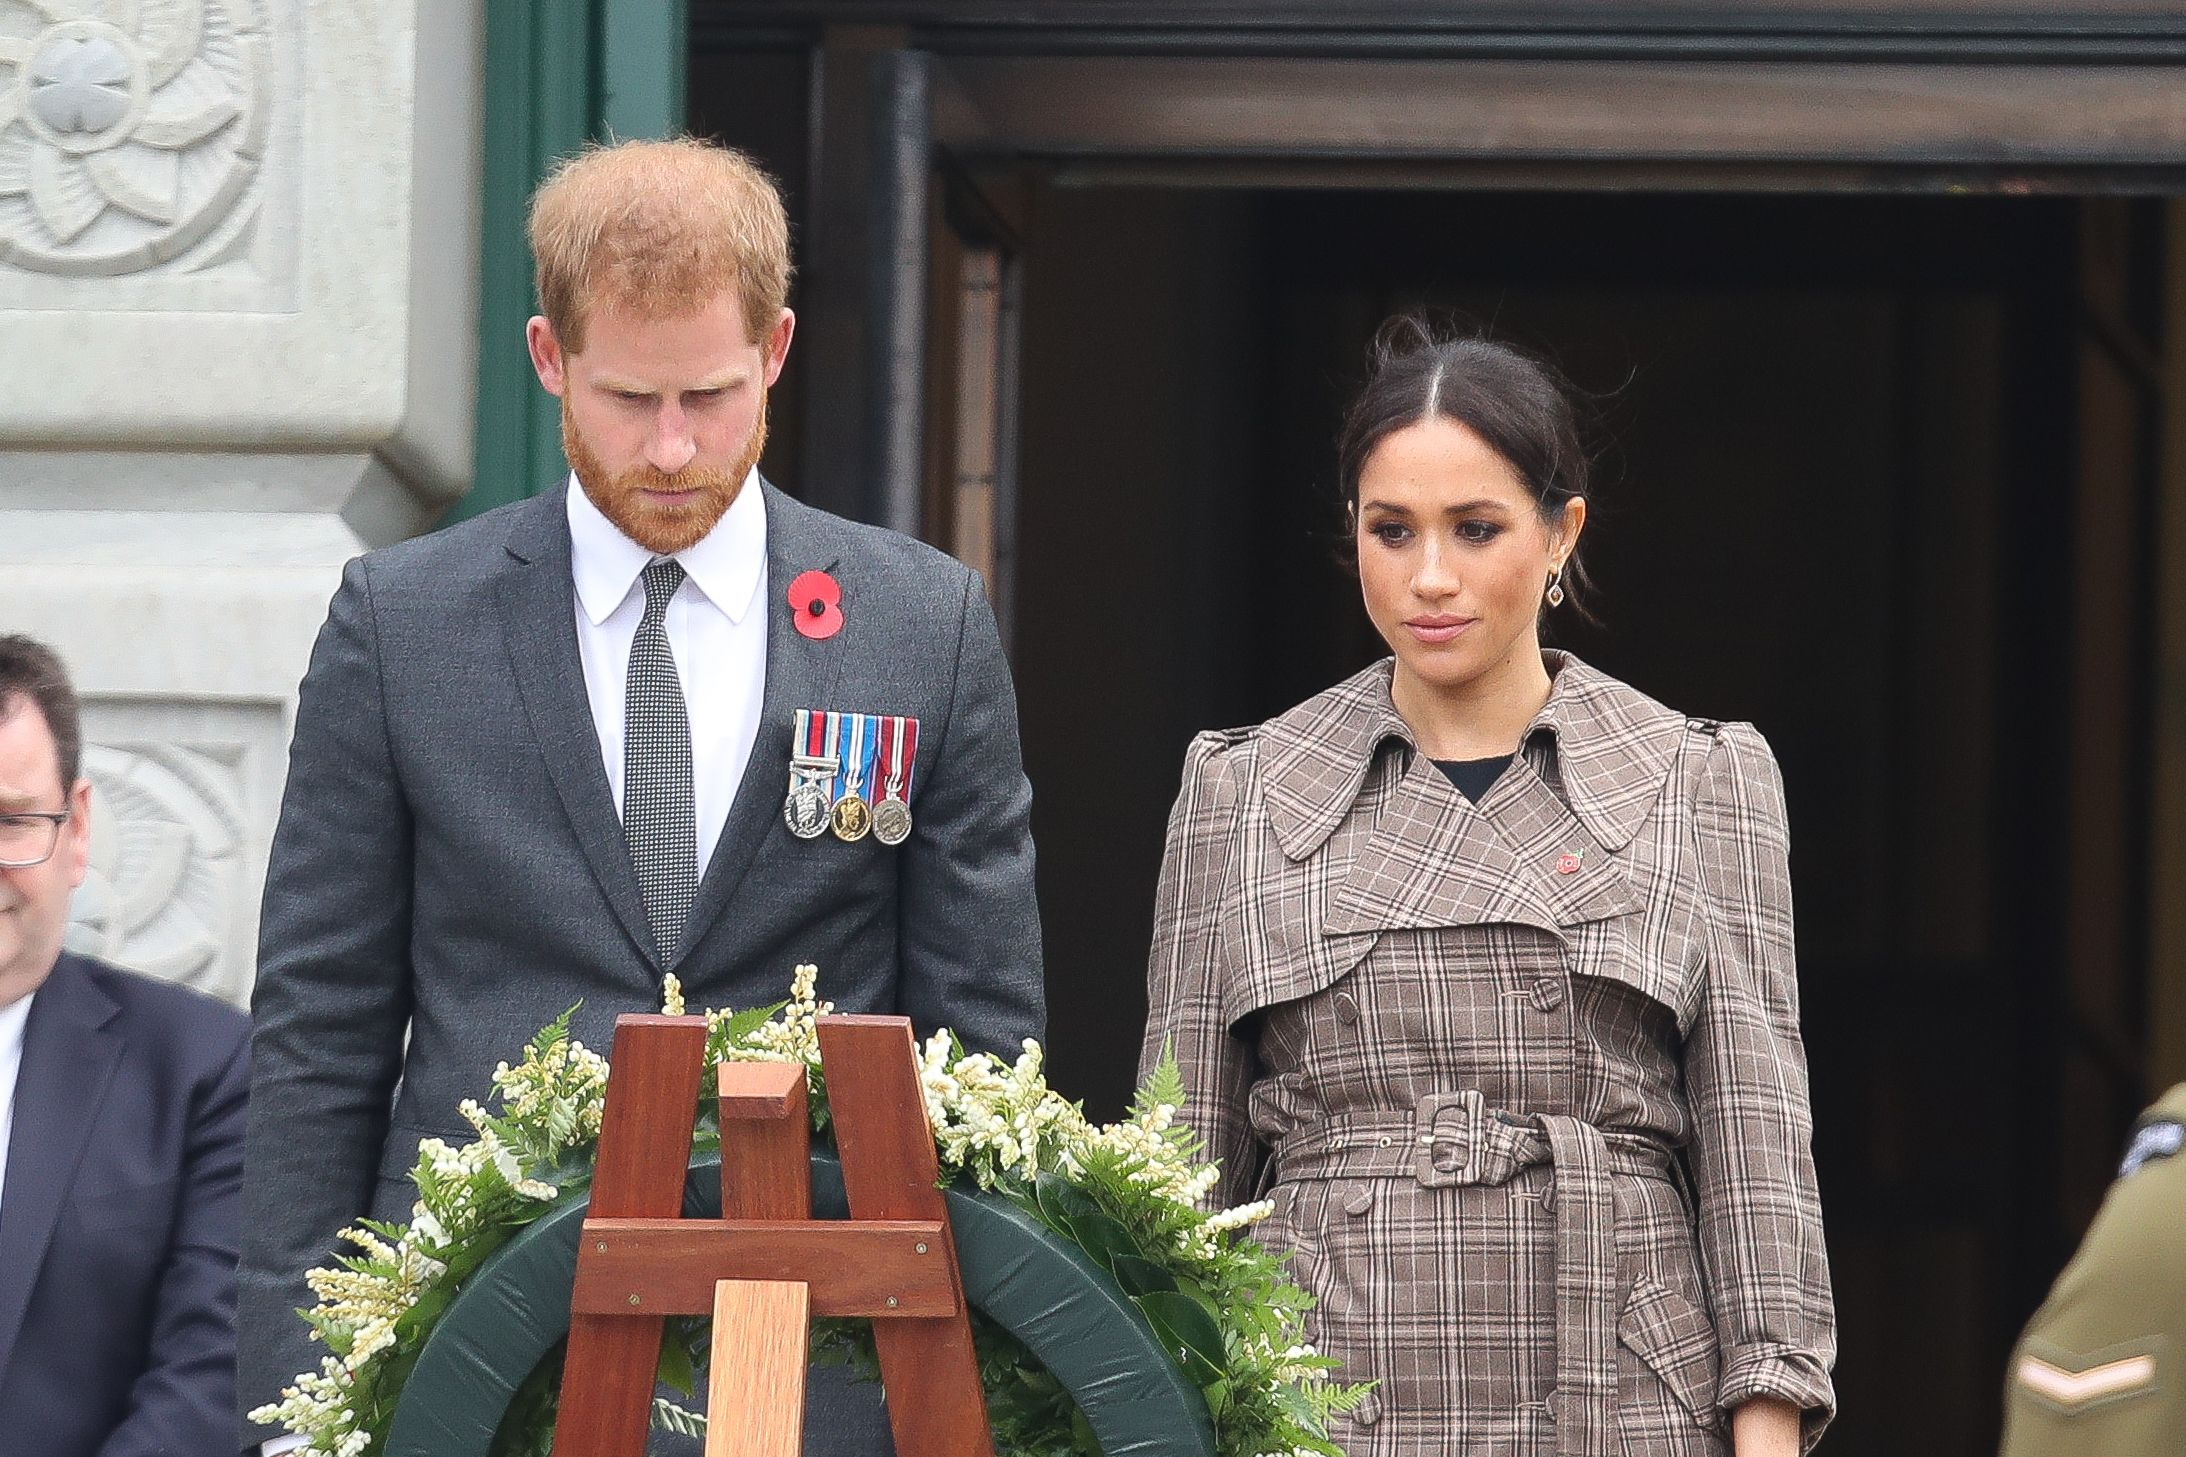 Prince Harry And Meghan Markle Told The Royal Family About Her Miscarriage Before Her Op-Ed Was Published